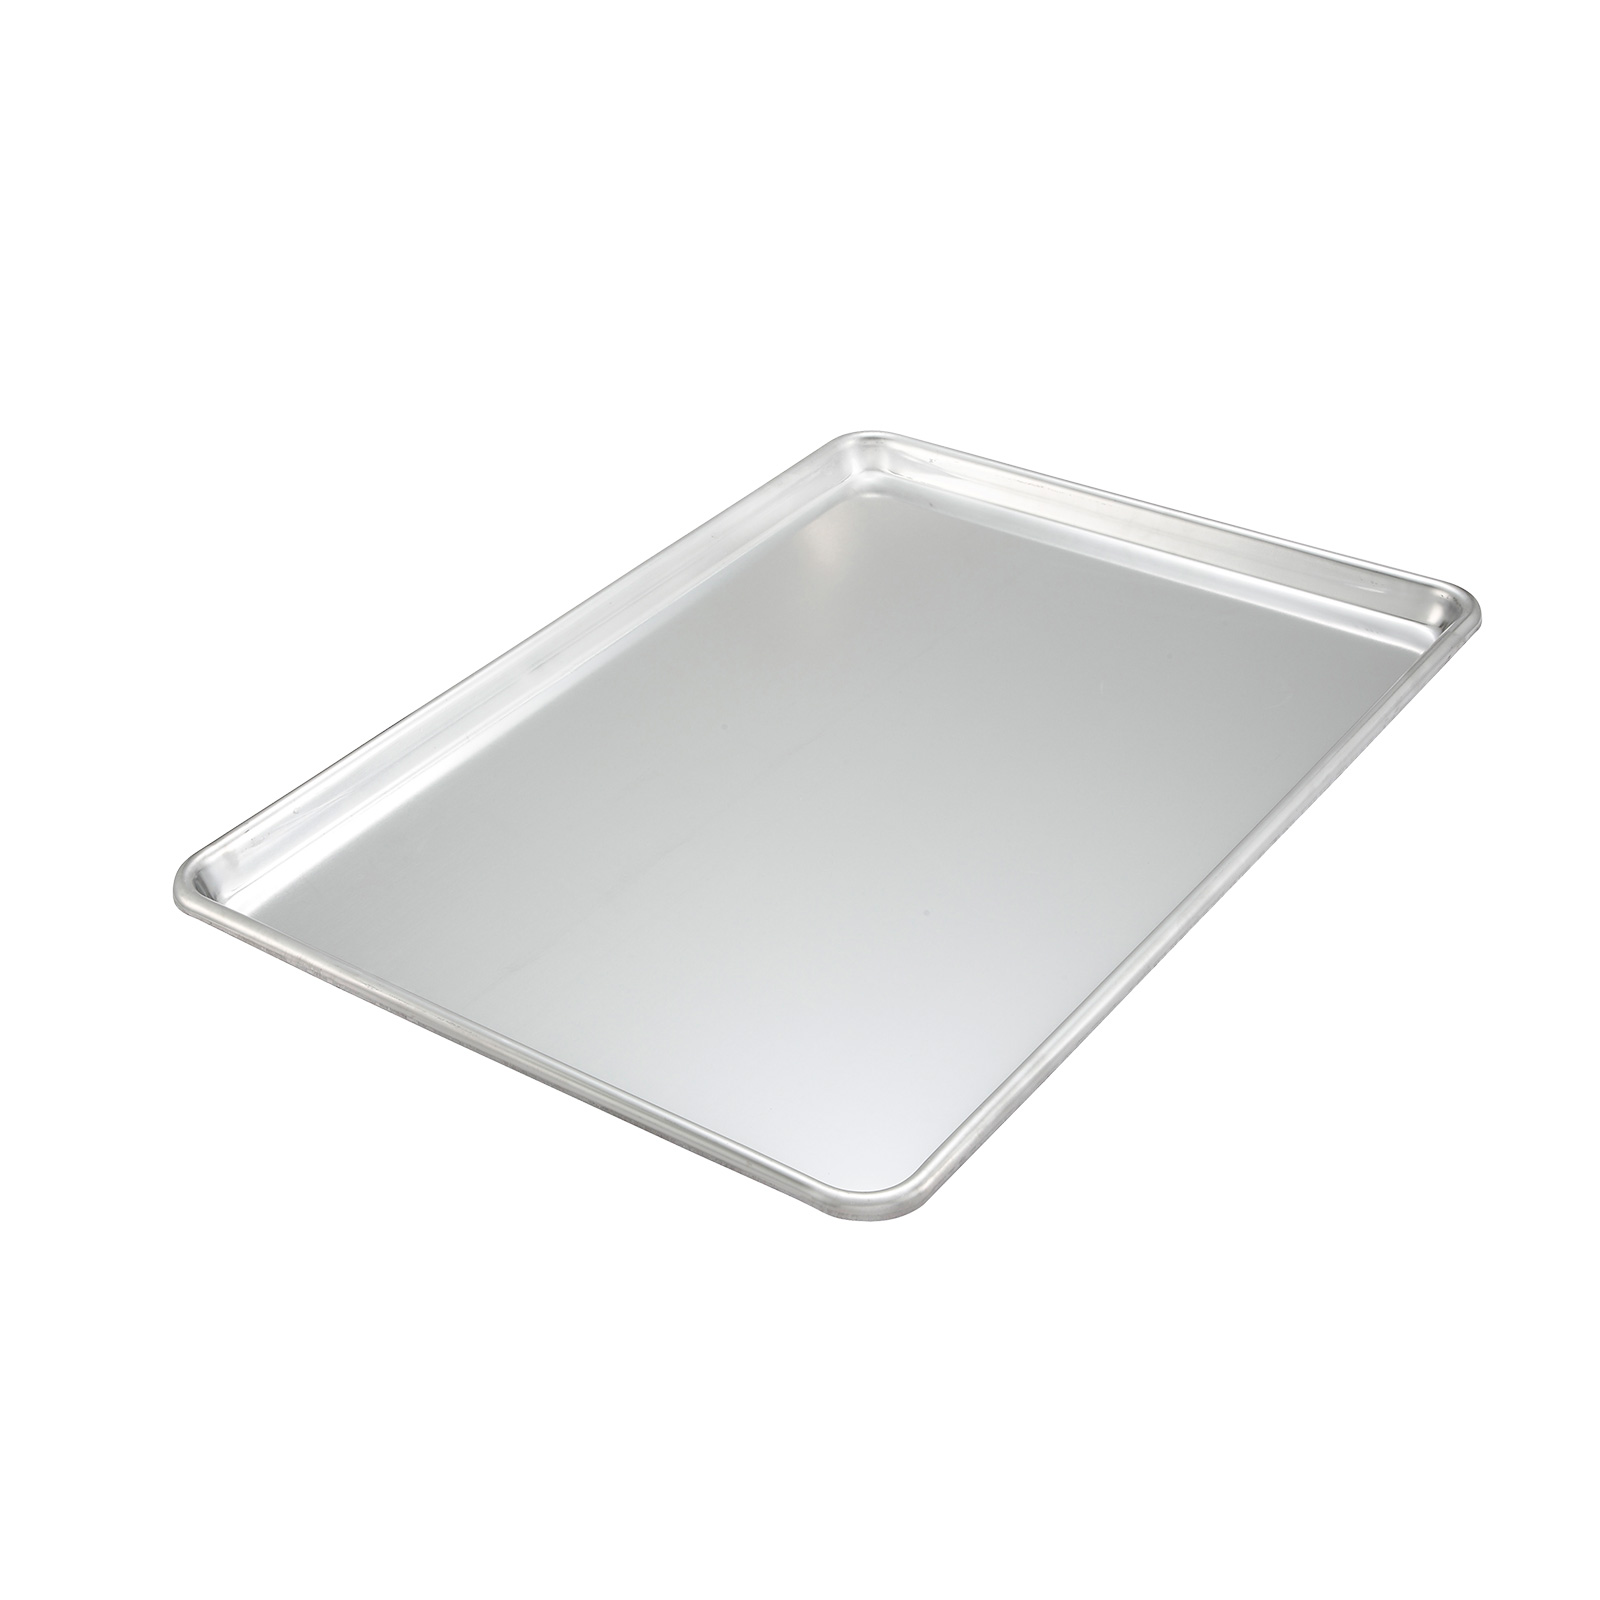 Winco ALXP-1200 bun / sheet pan